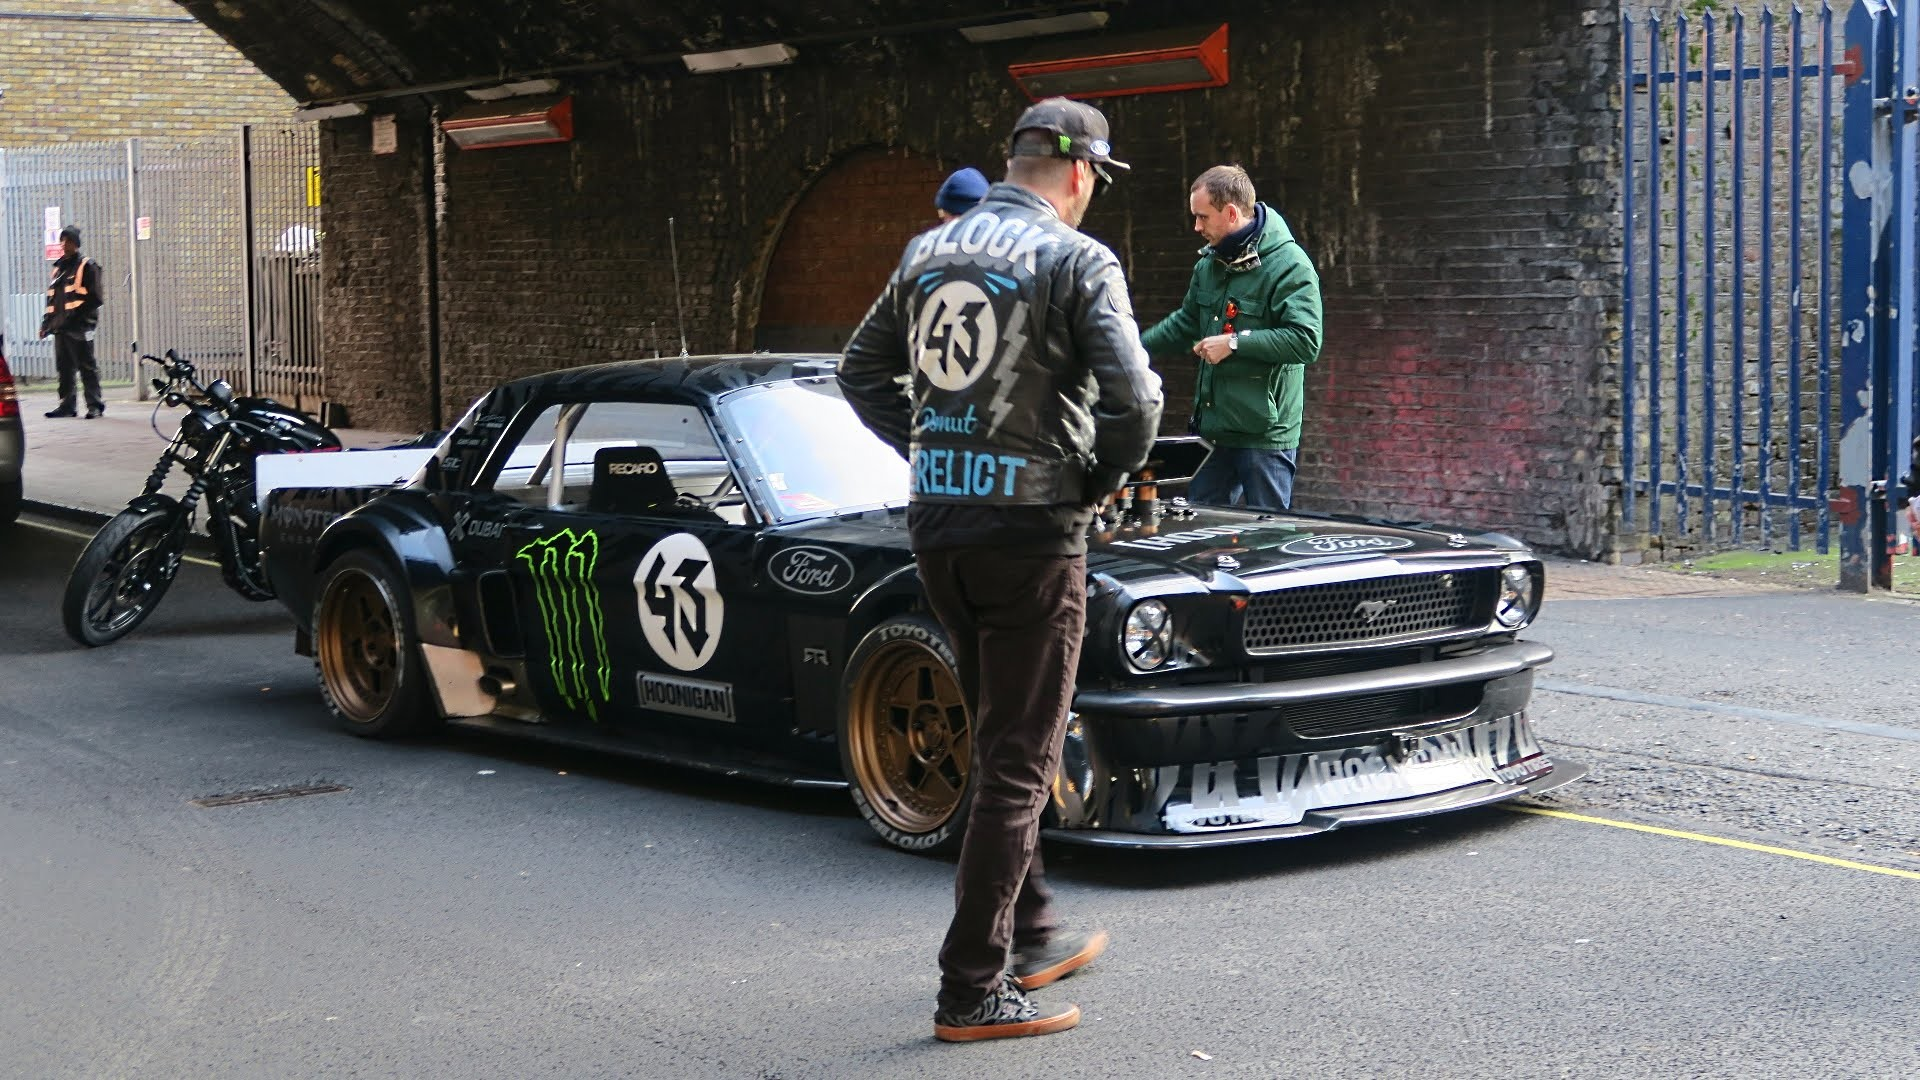 1920x1280 Wallpaper Cars Ken Block Mustang Wallpaper 78 Images